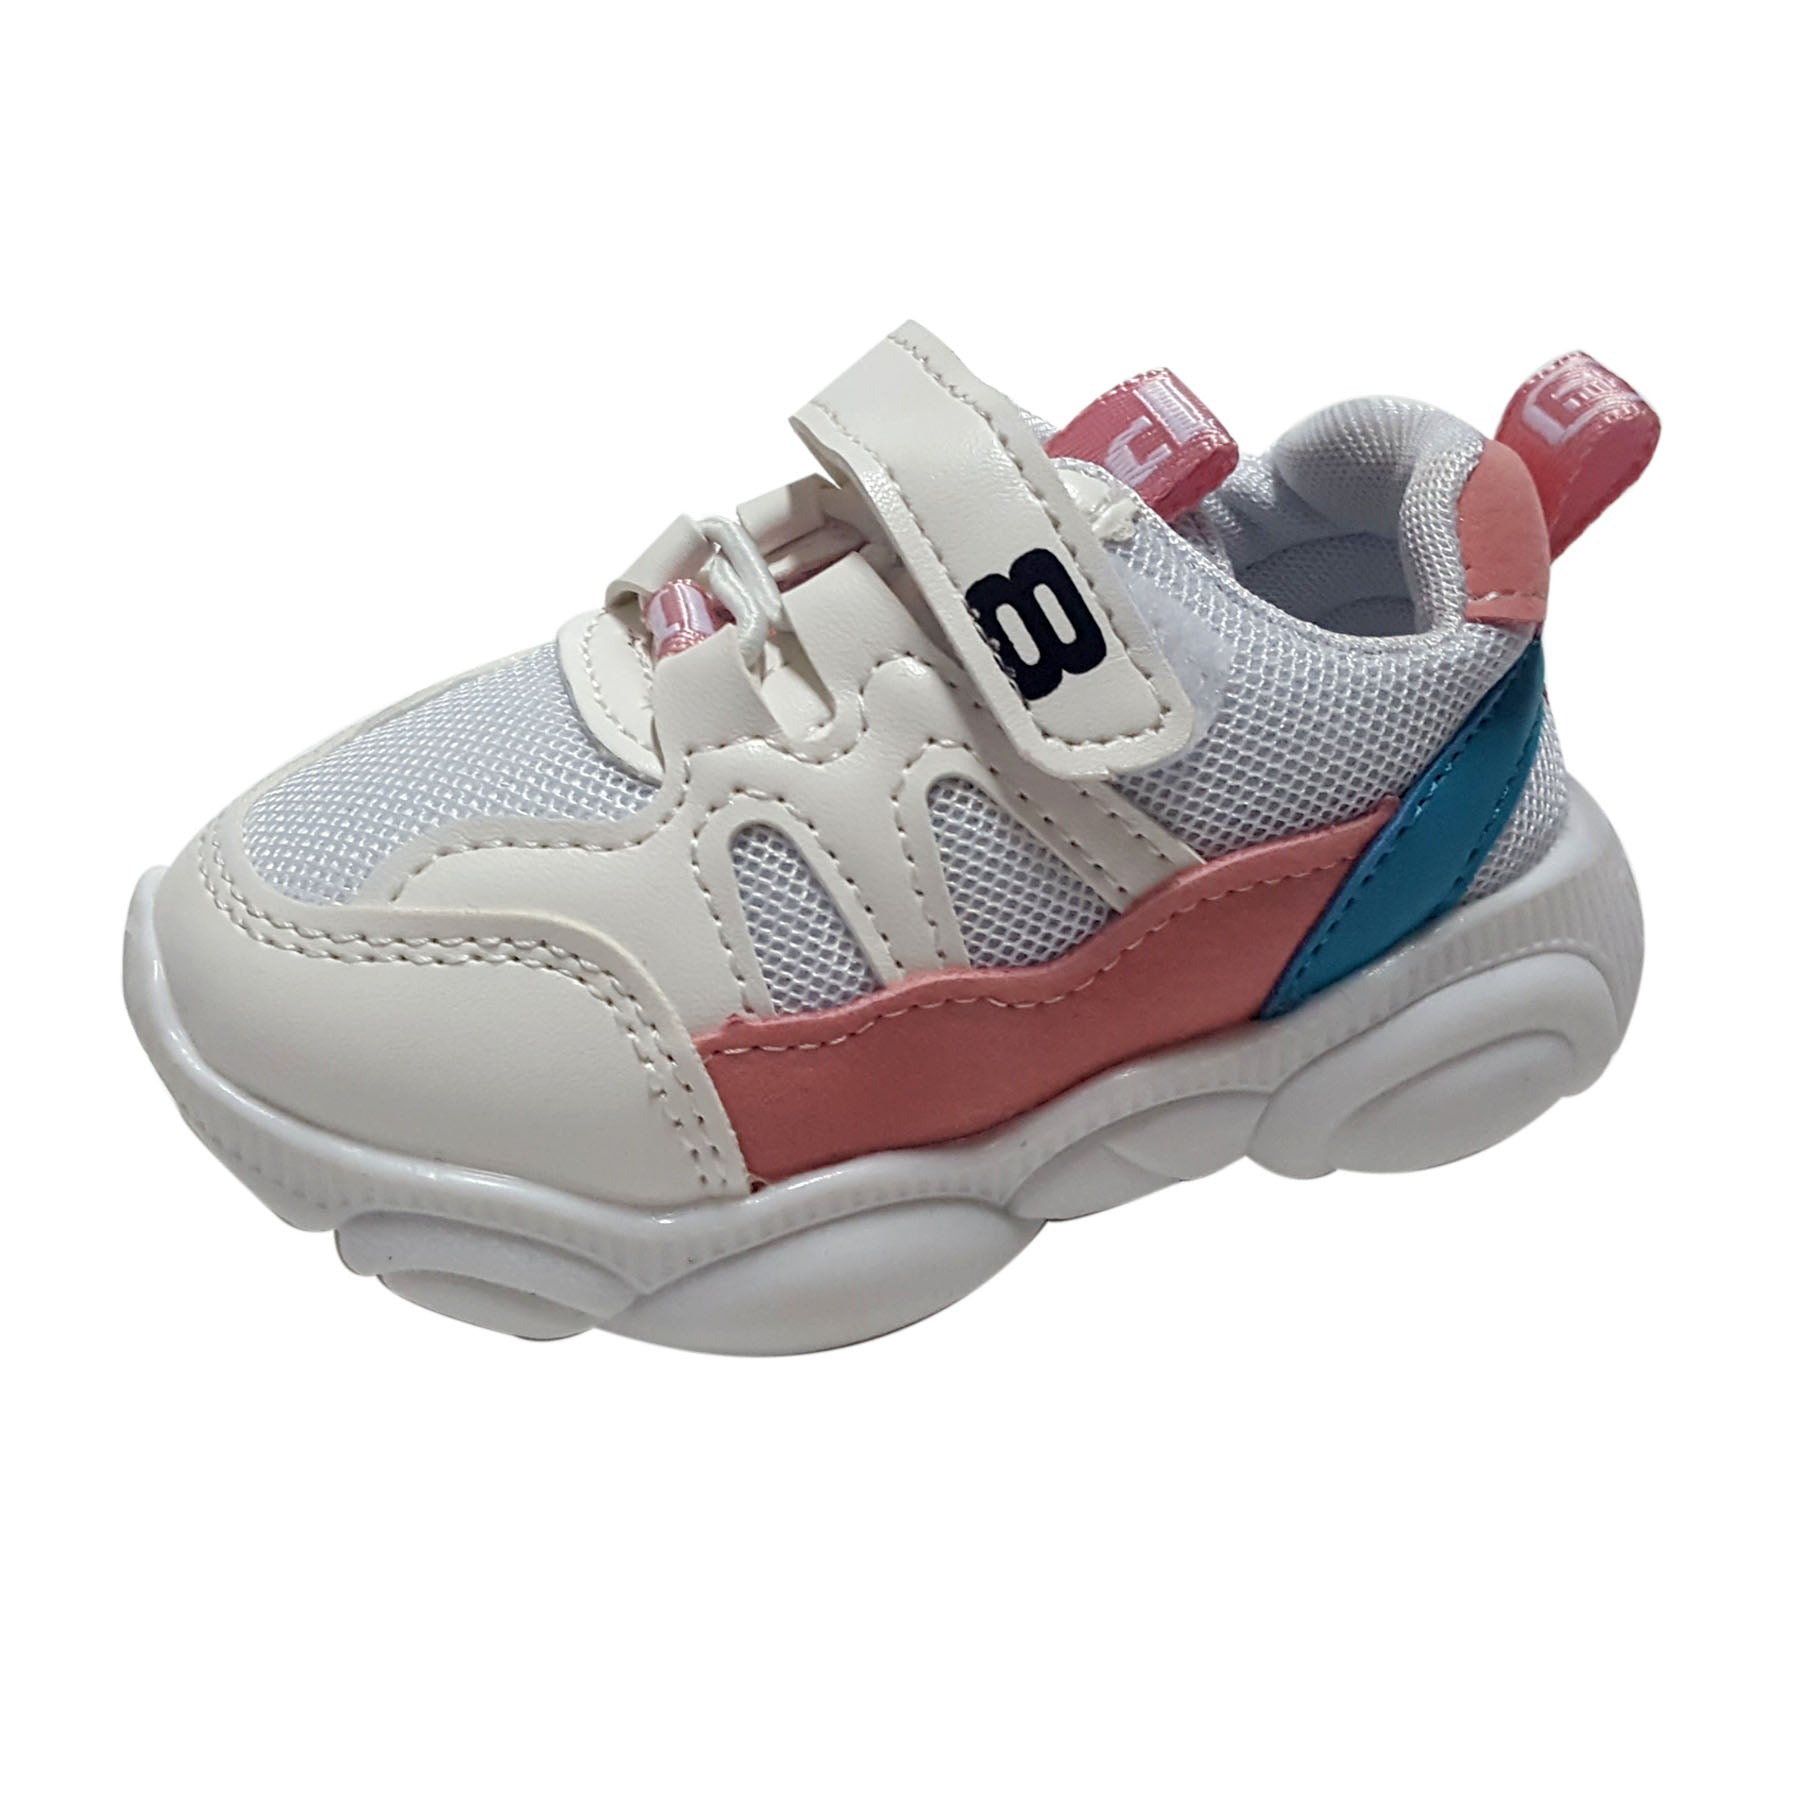 S178 Raf Raf Sports Shoes - Byron Pink